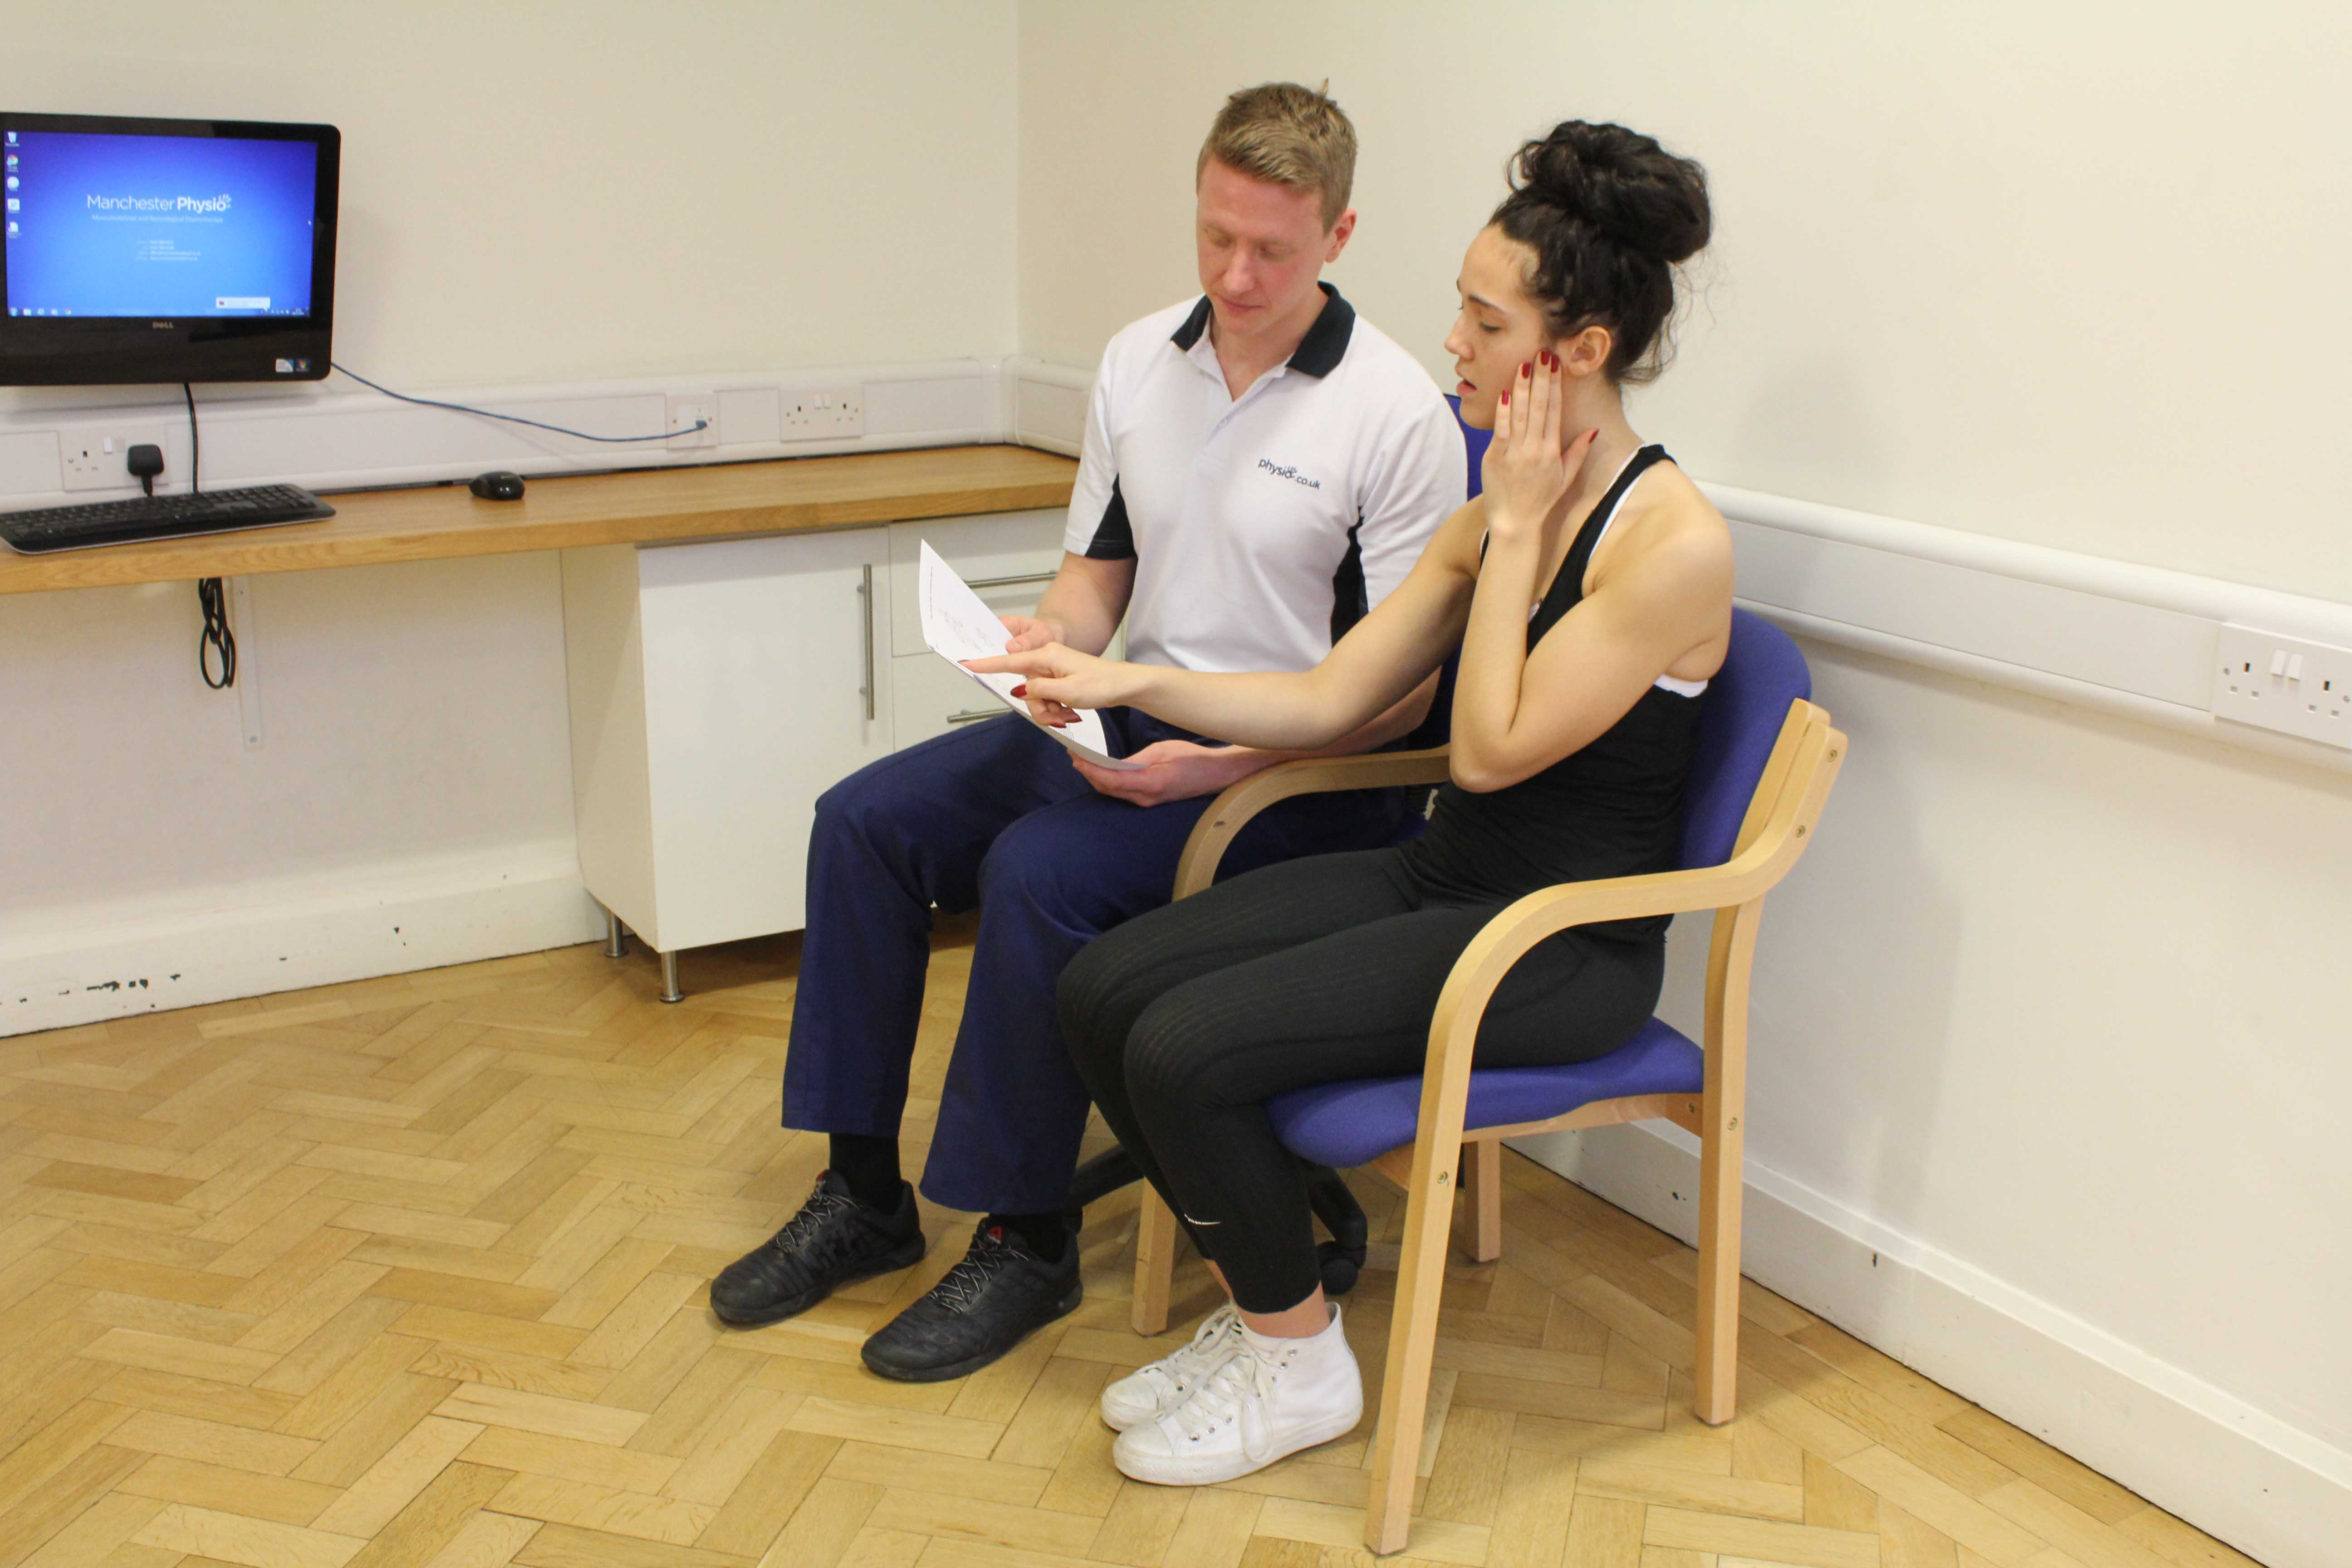 Patient advice provided by an experienced neurological physiotherapist